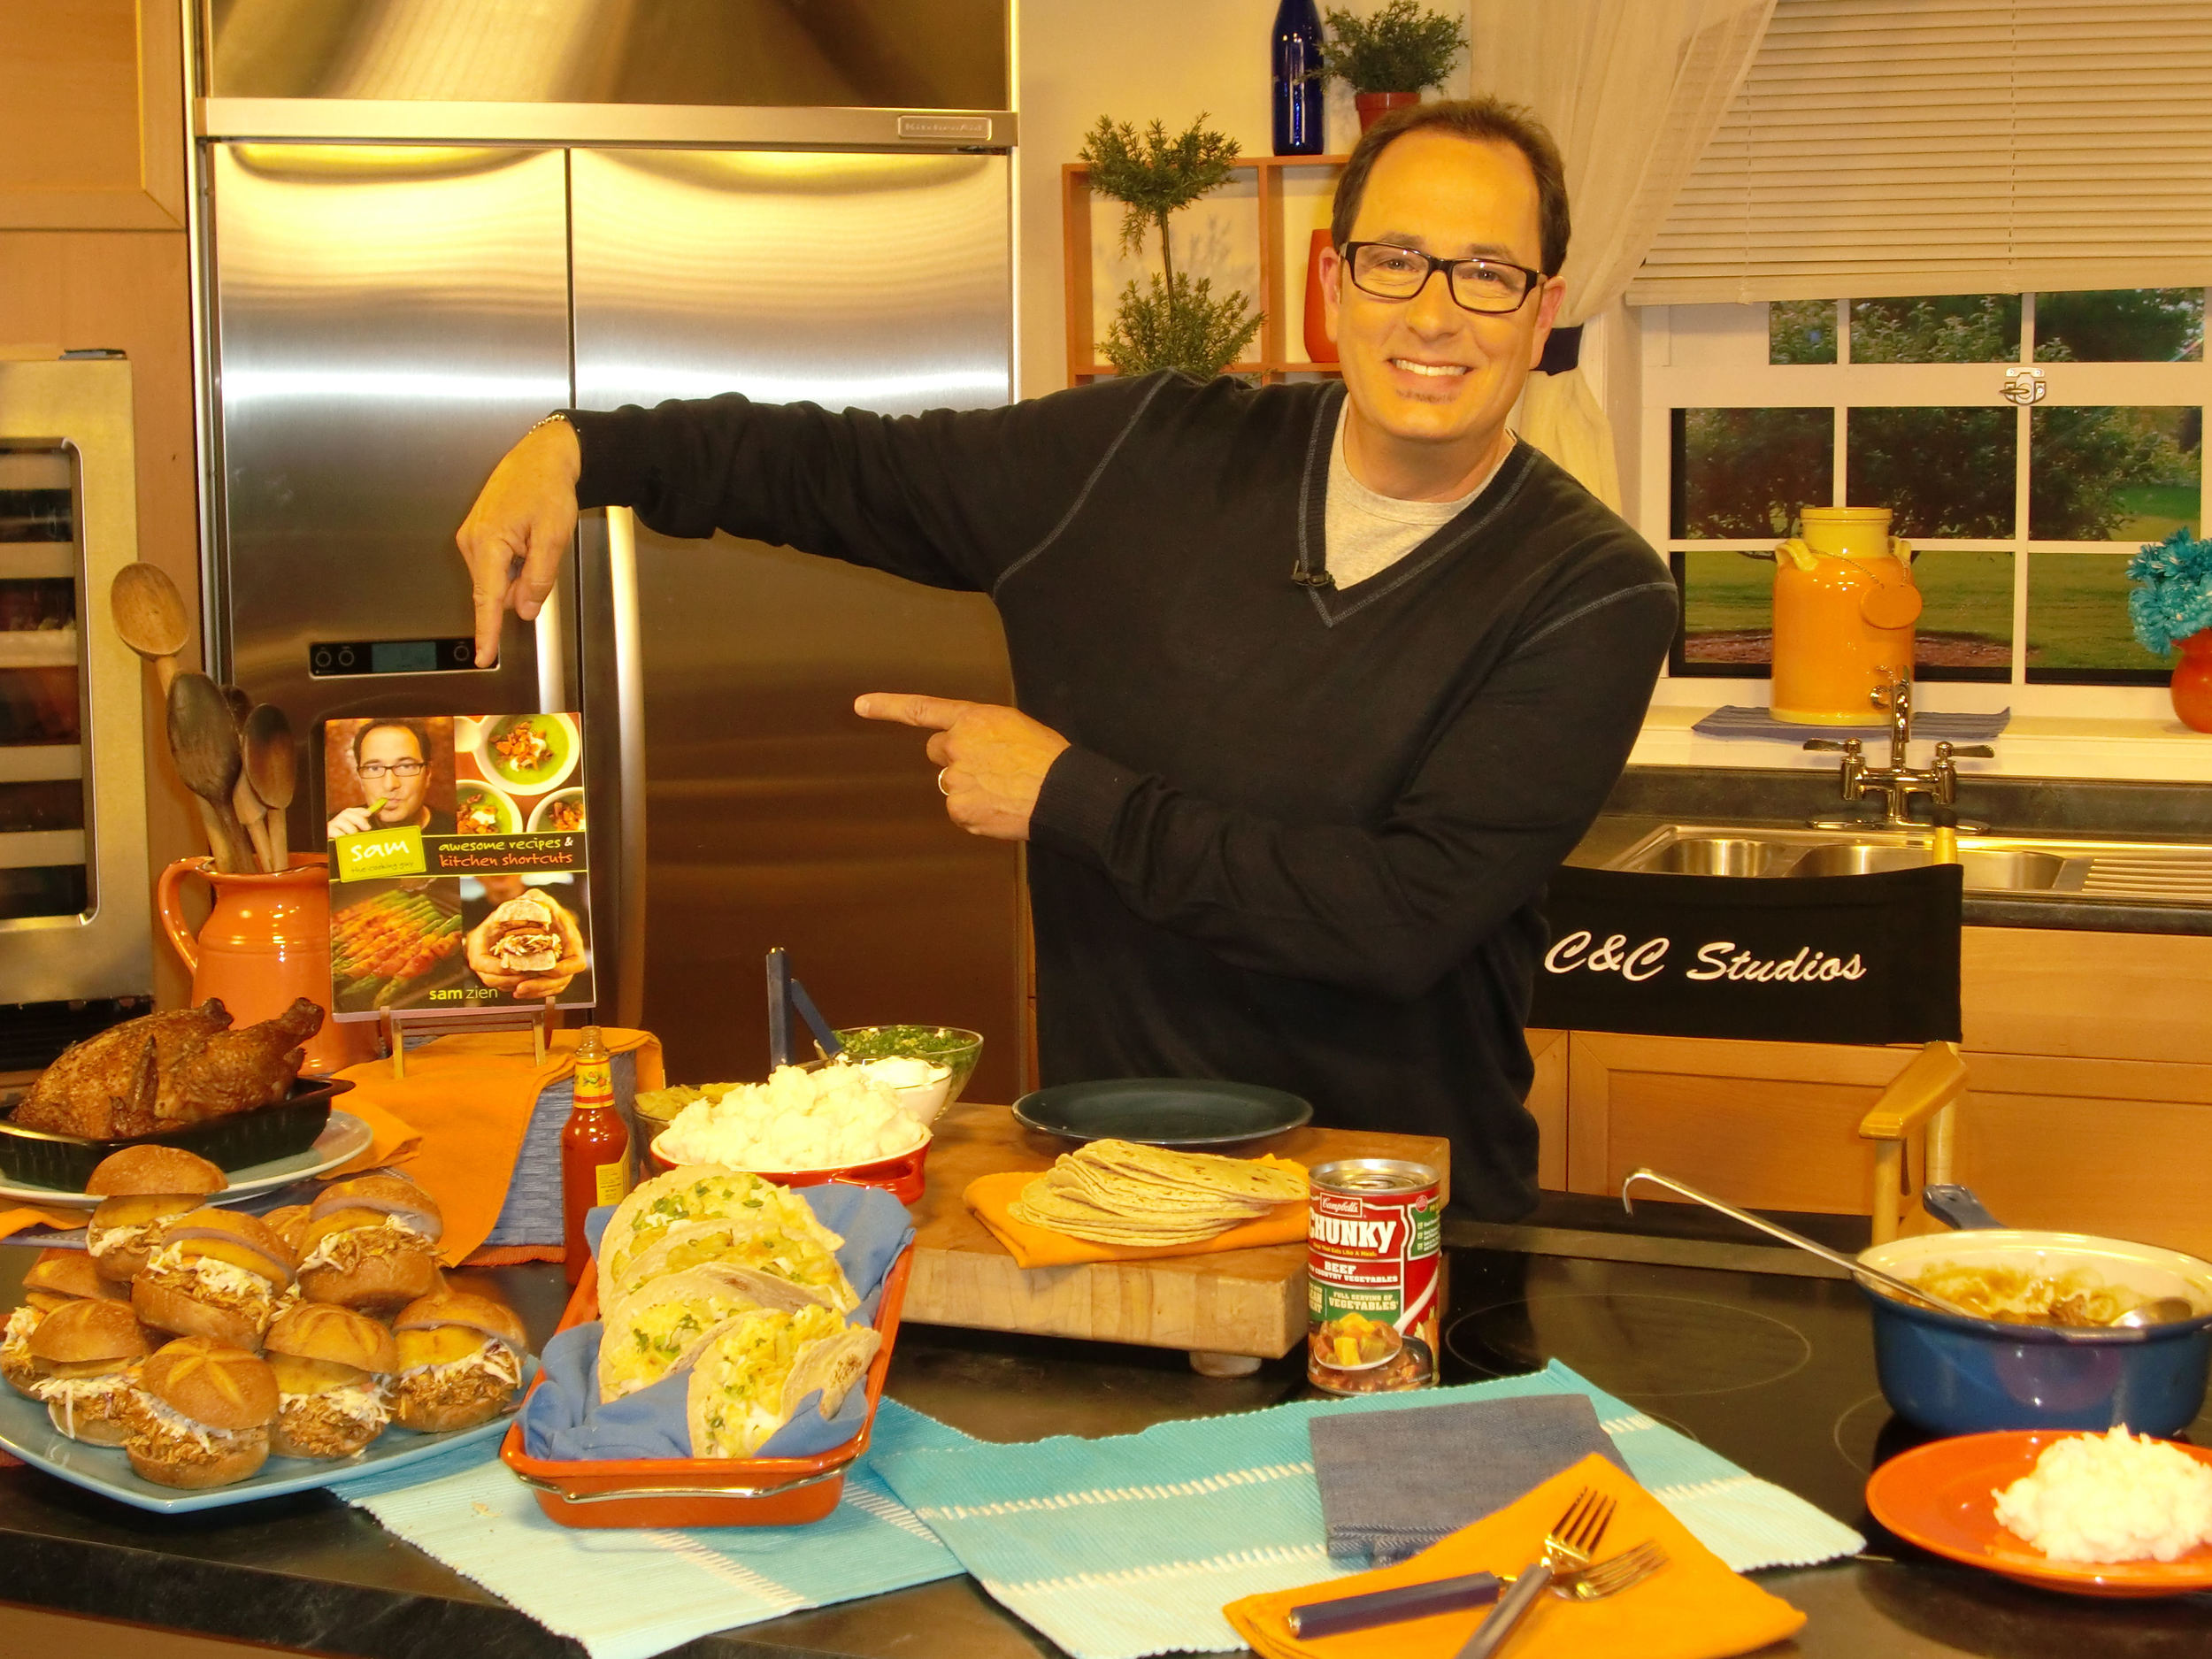 Sam Zien Awesome Recipes Chunky Soup smt4.jpg